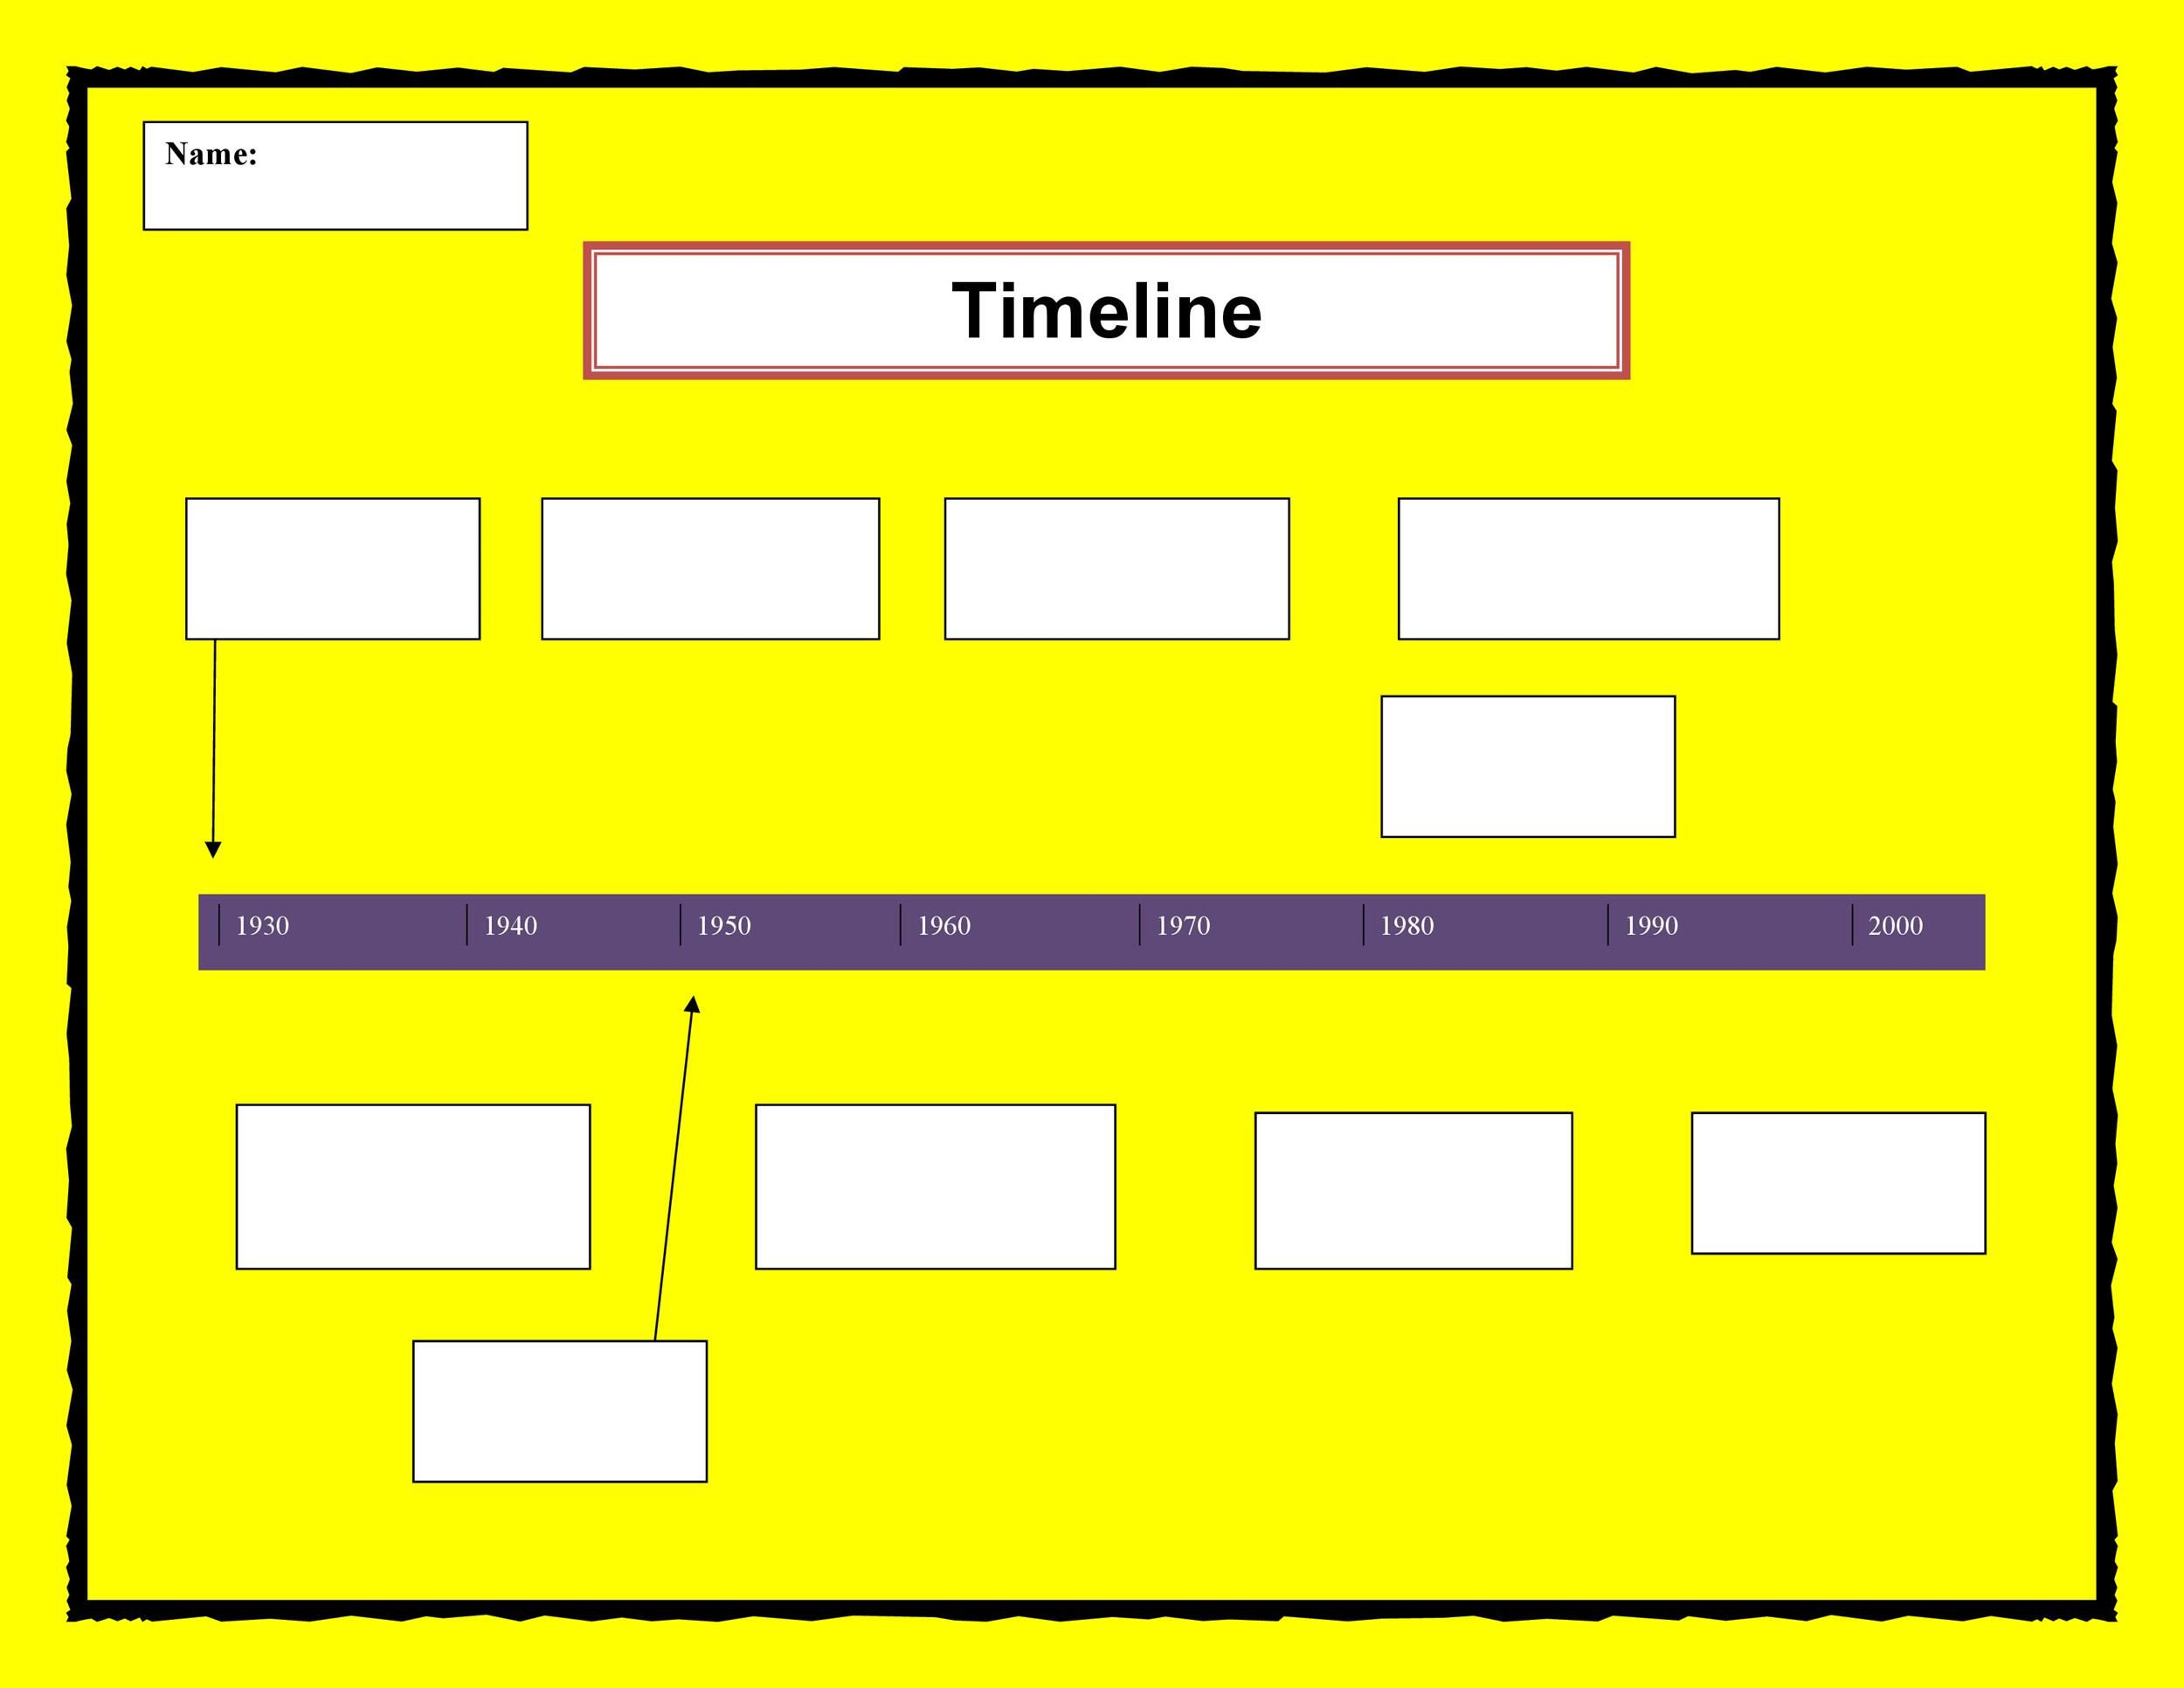 005 Awful Timeline Template In Word Inspiration  2010 Wordpres FreeFull